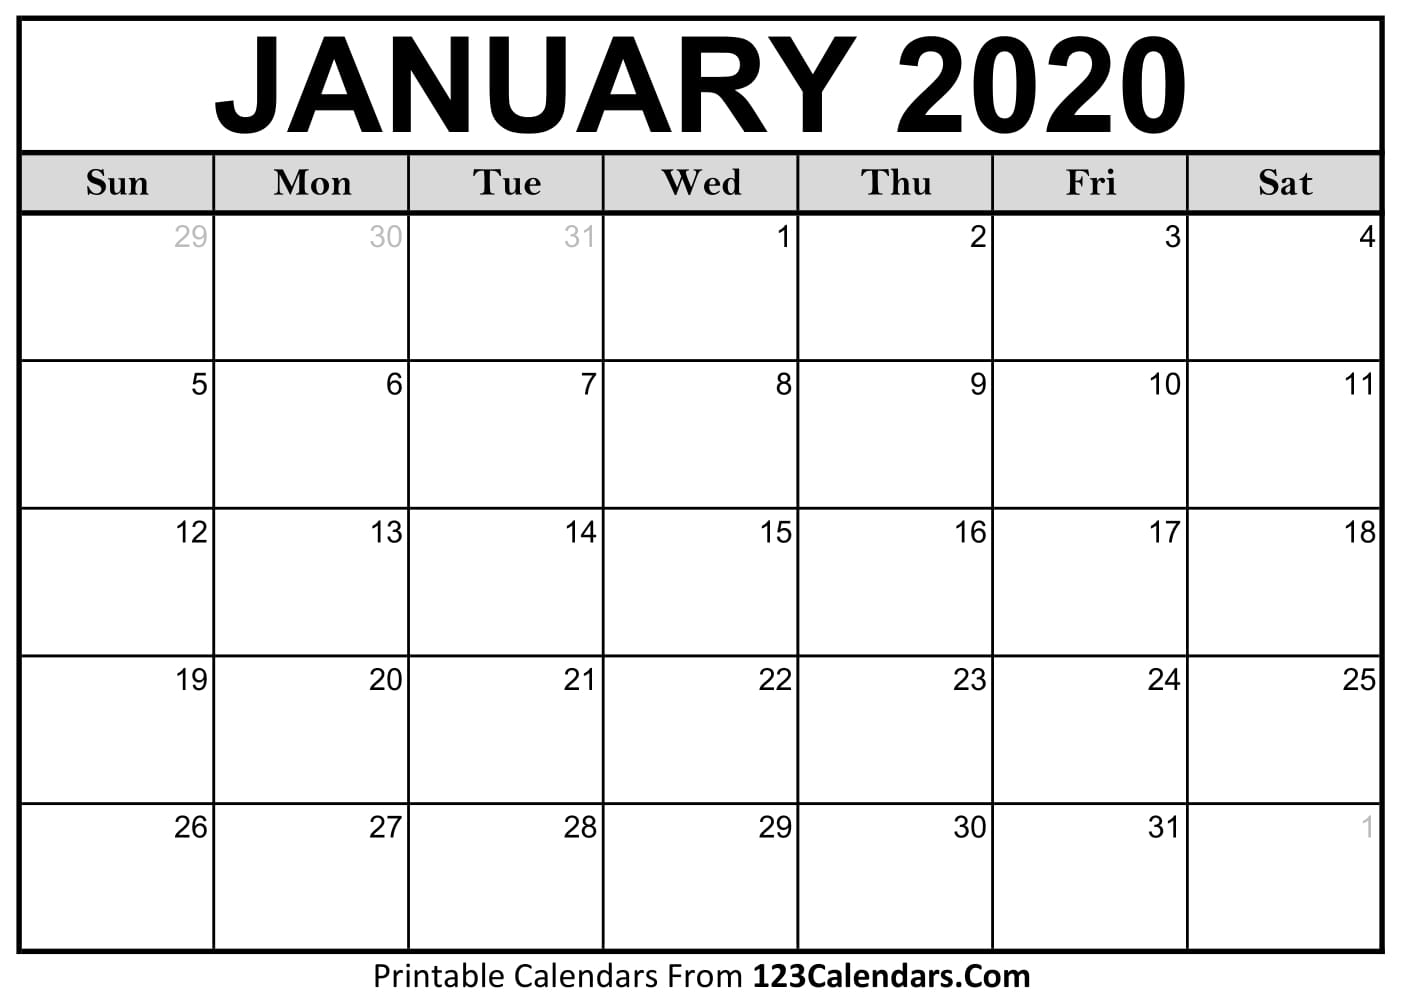 January 2020 Printable Calendar | 123Calendars in 123 Calendar January 2020